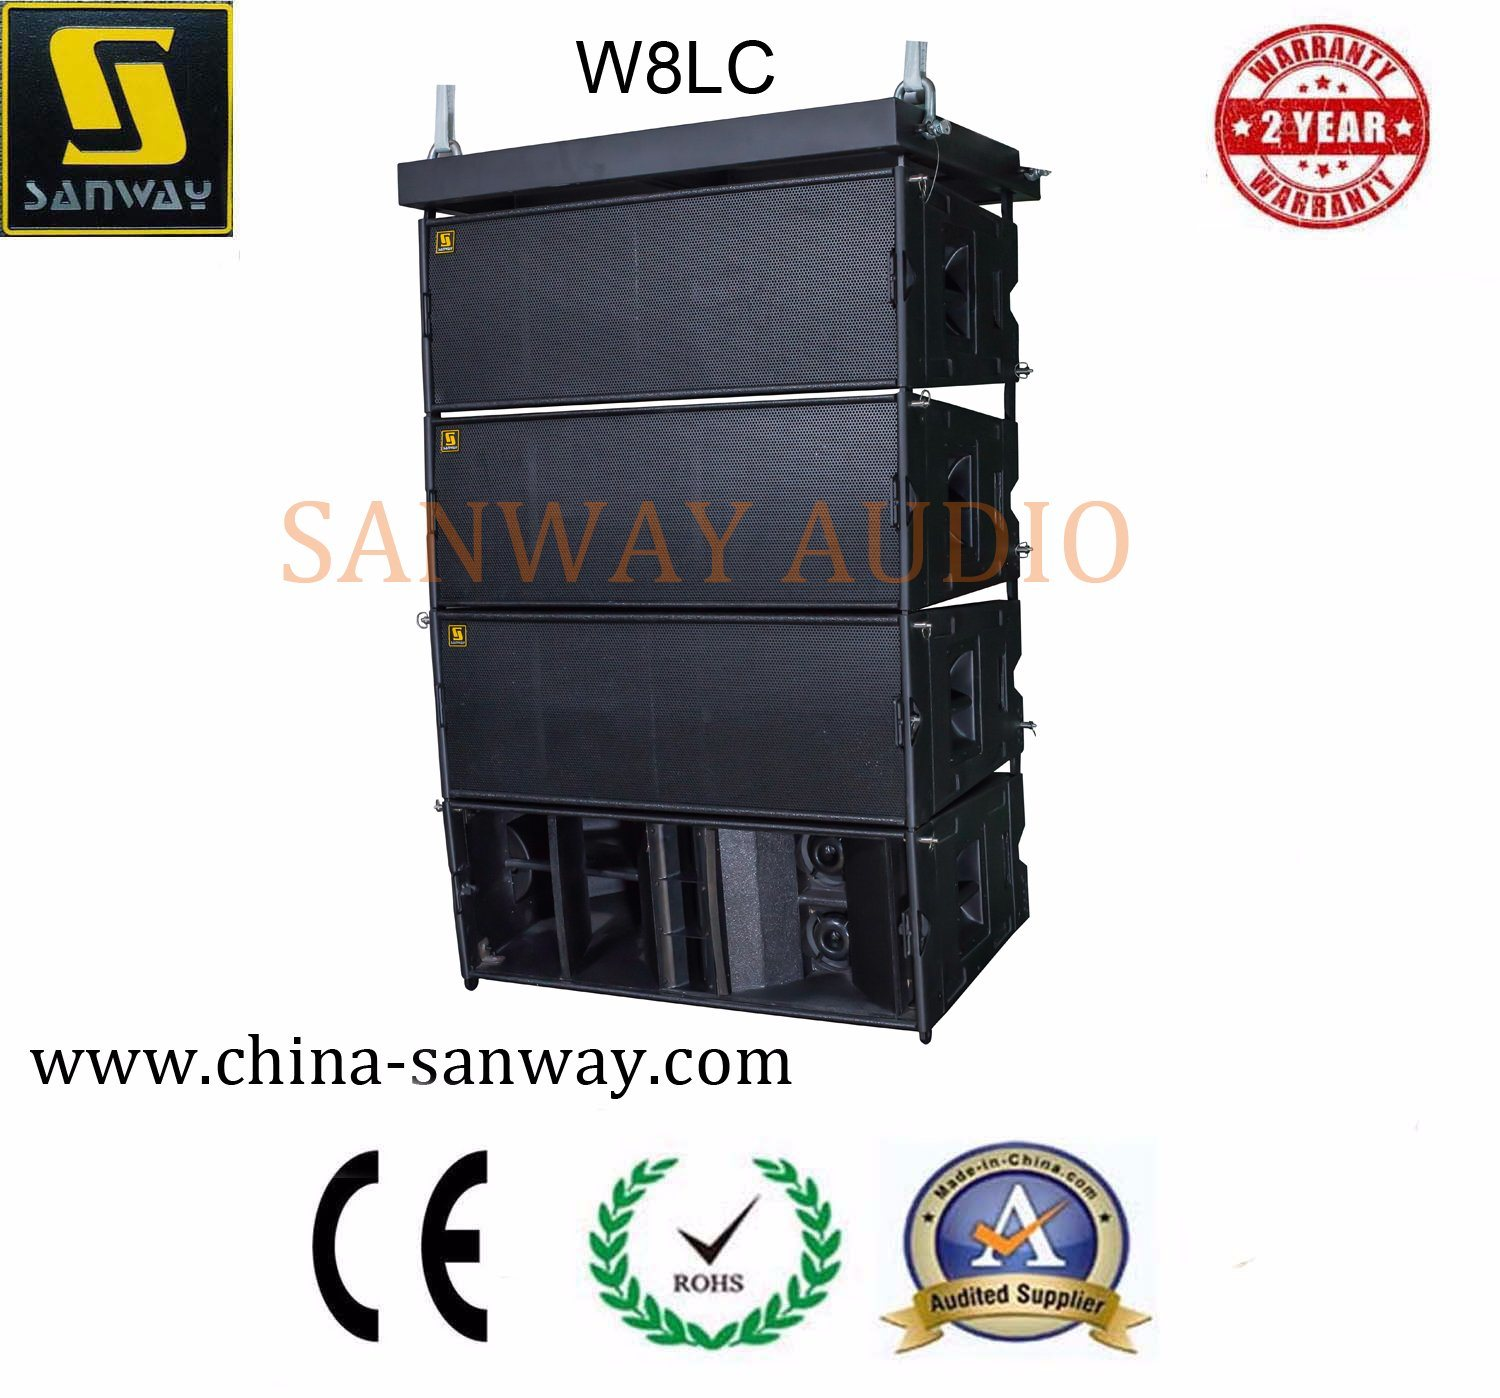 W8LC 3-Way High Power Speaker Professional Line Array, PRO Audio PA System